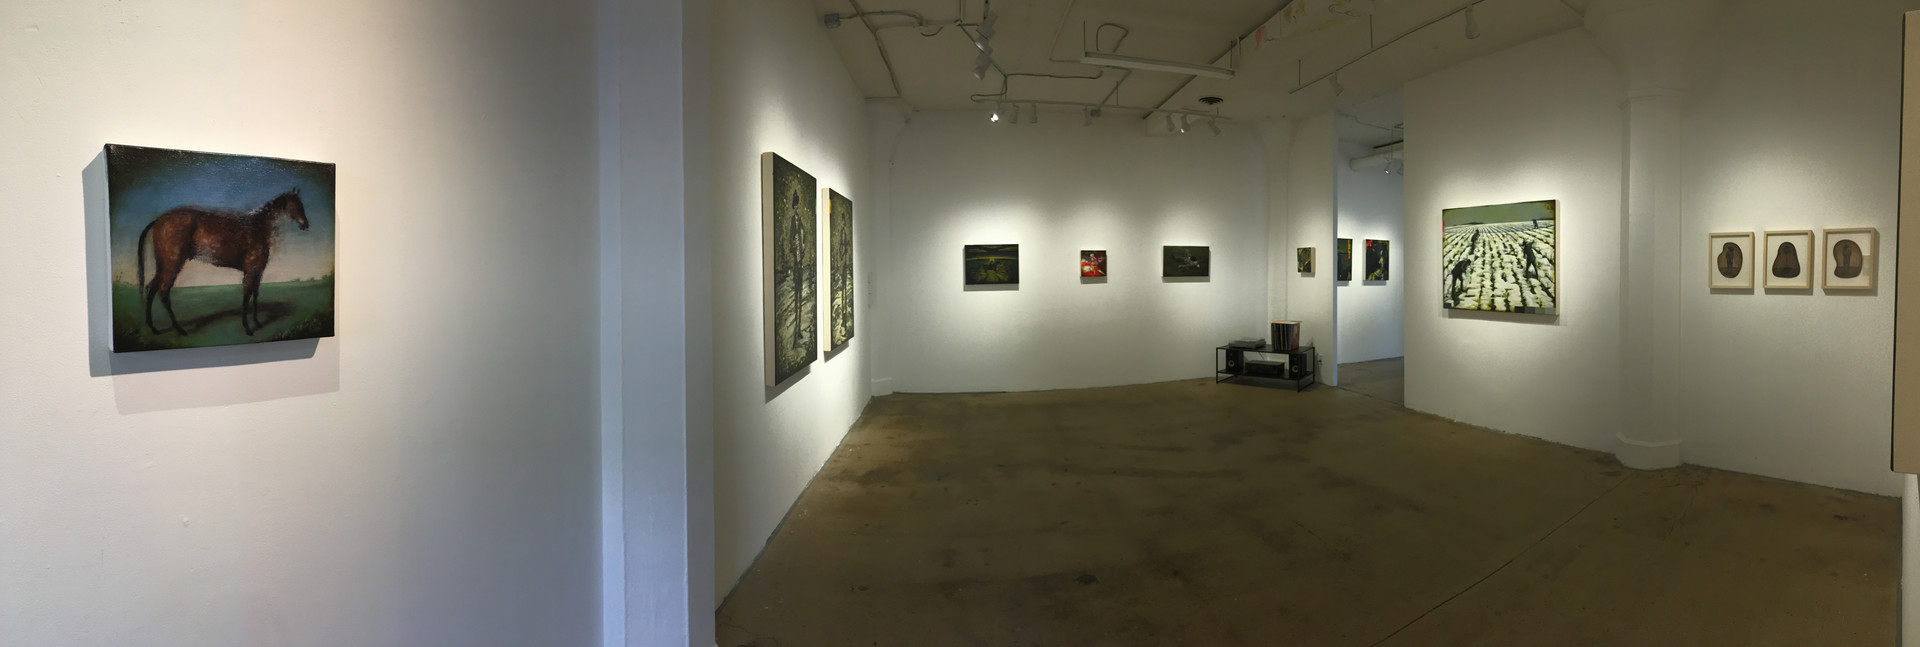 Main gallery installation view 3